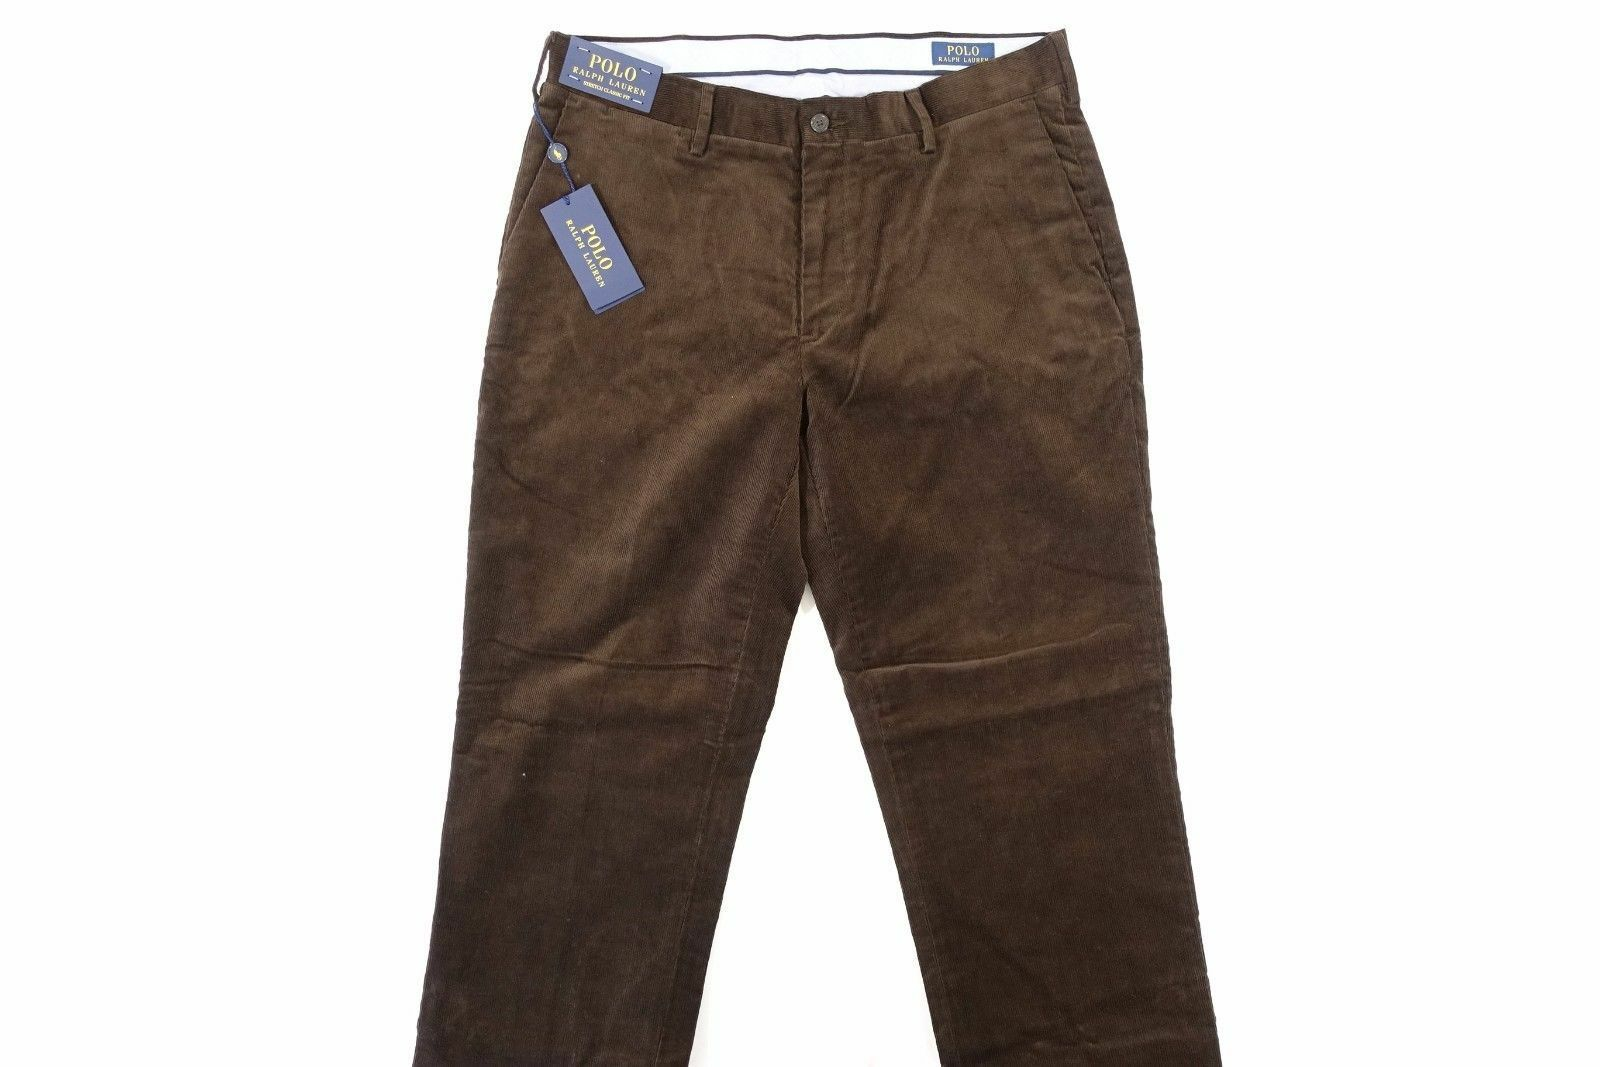 Polo Ralph Lauren Stretch Classic Fit Corduroy - Worth Brown - 30X32